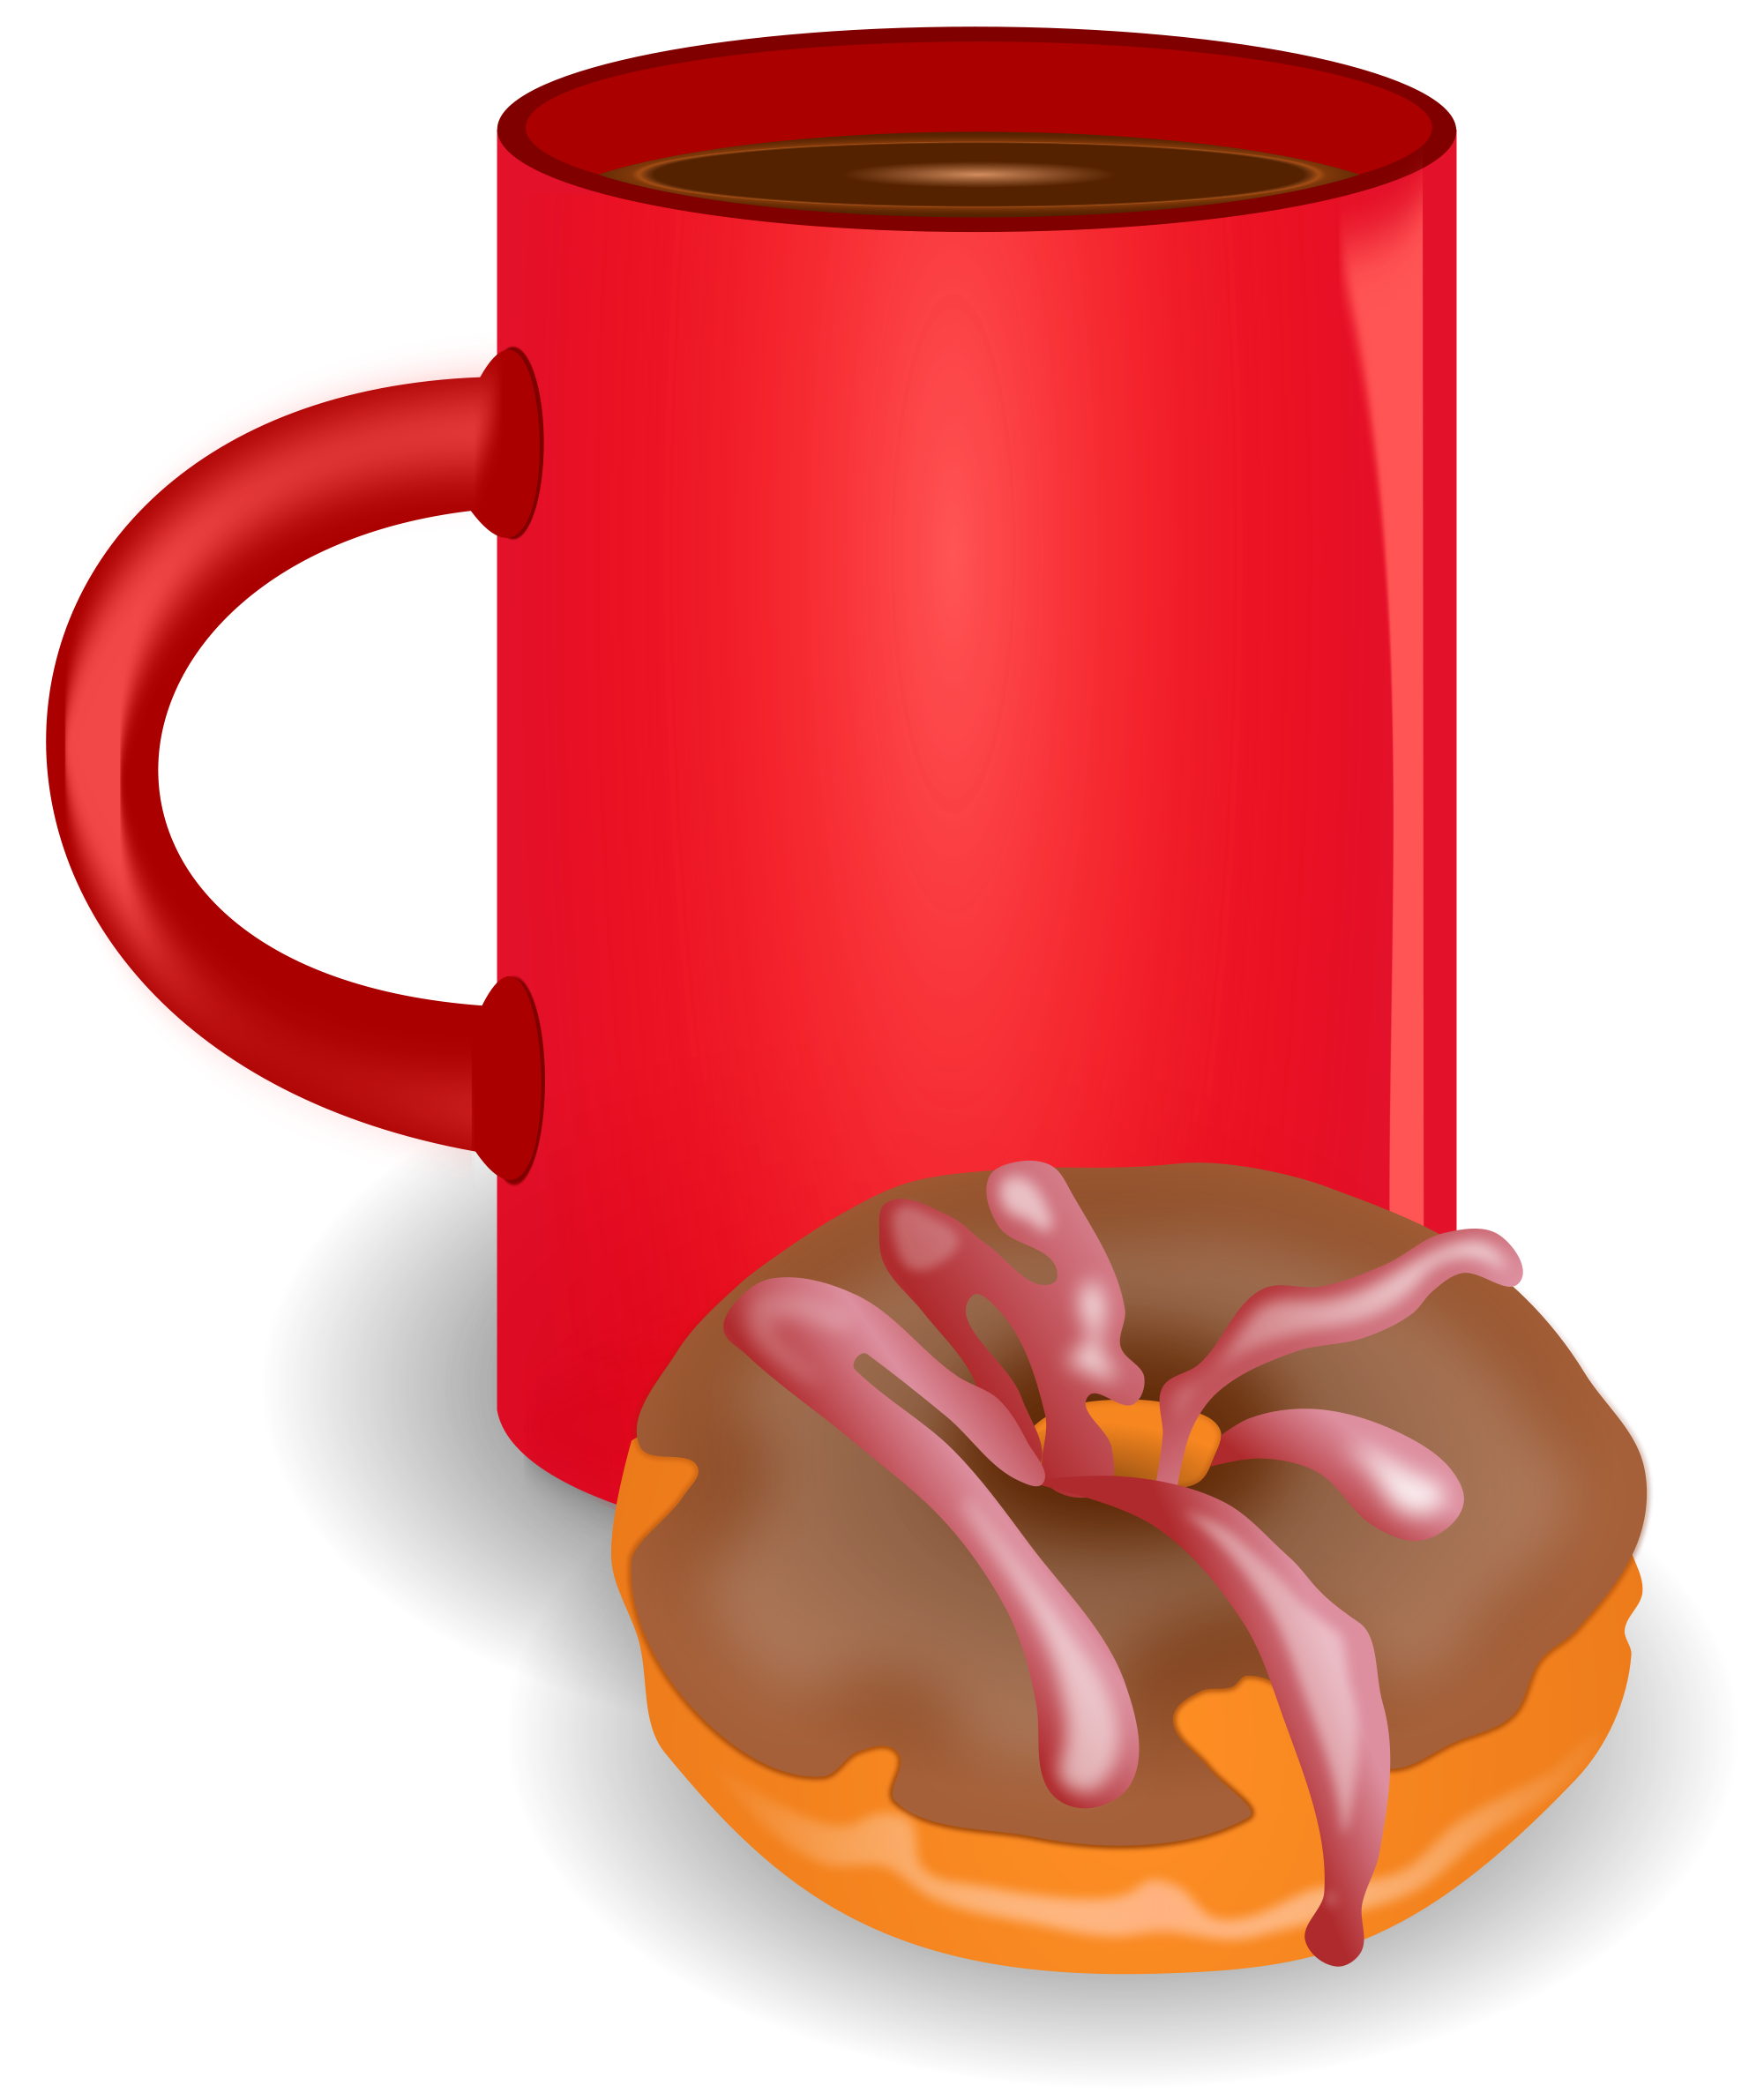 Clipart coffee file. Doghnout svg wikimedia commons